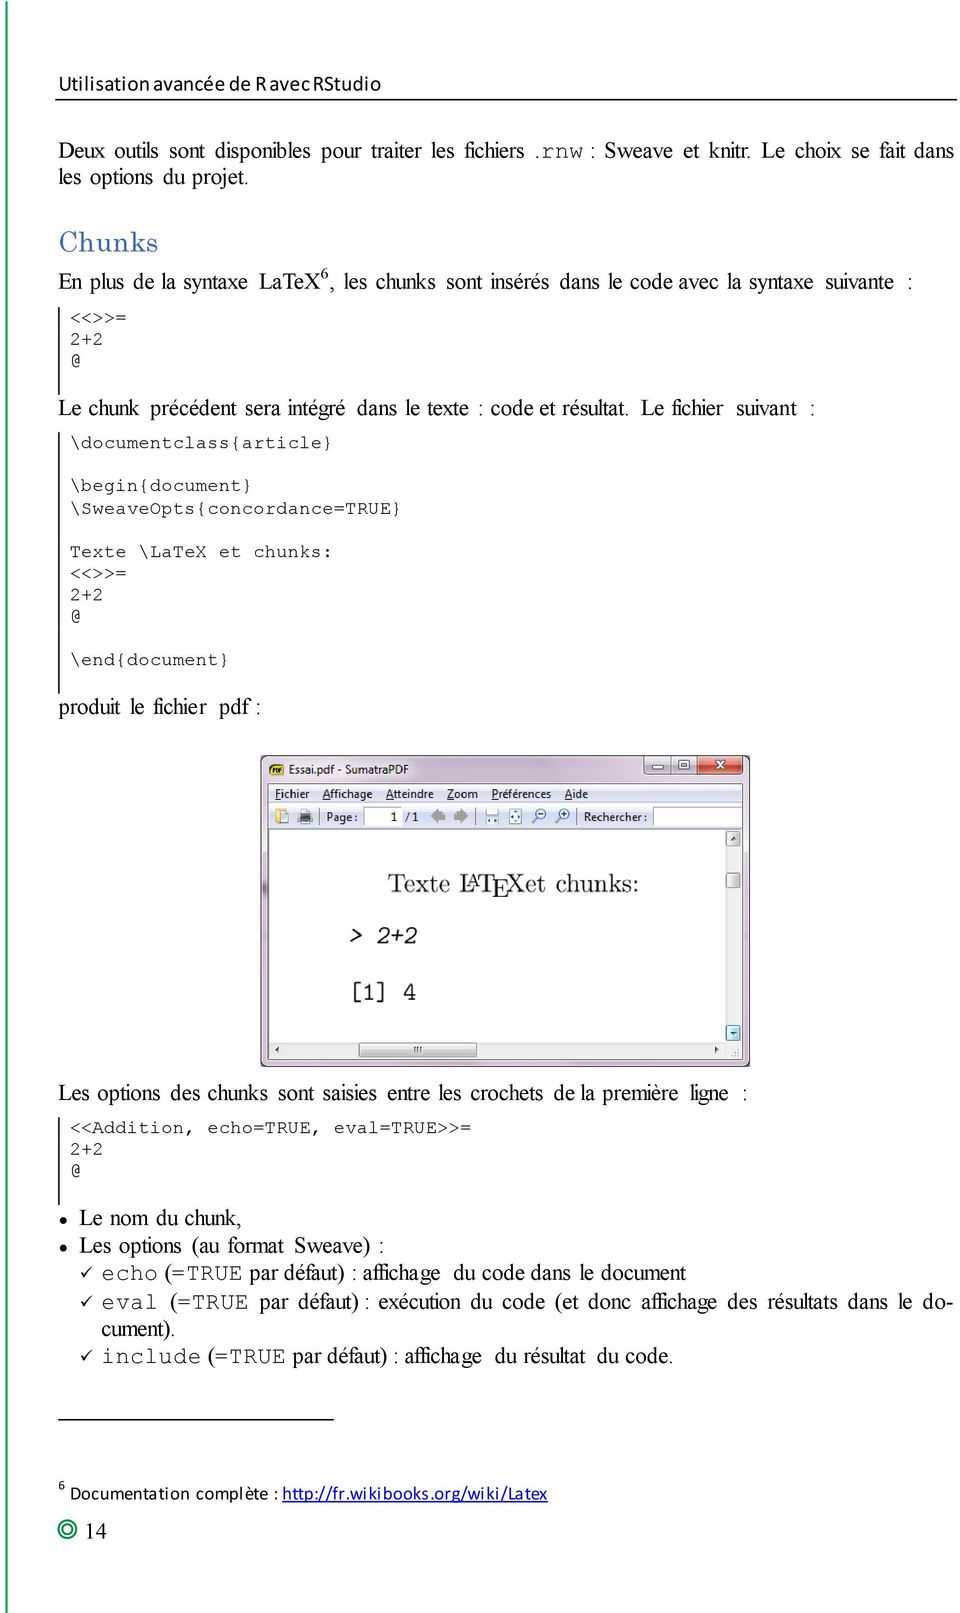 Le fichier suivant : \documentclass{article \begin{document \SweaveOpts{concordance=TRUE Texte \LaTeX et chunks: <<>>= 2+2 @ \end{document produit le fichier pdf : Les options des chunks sont saisies